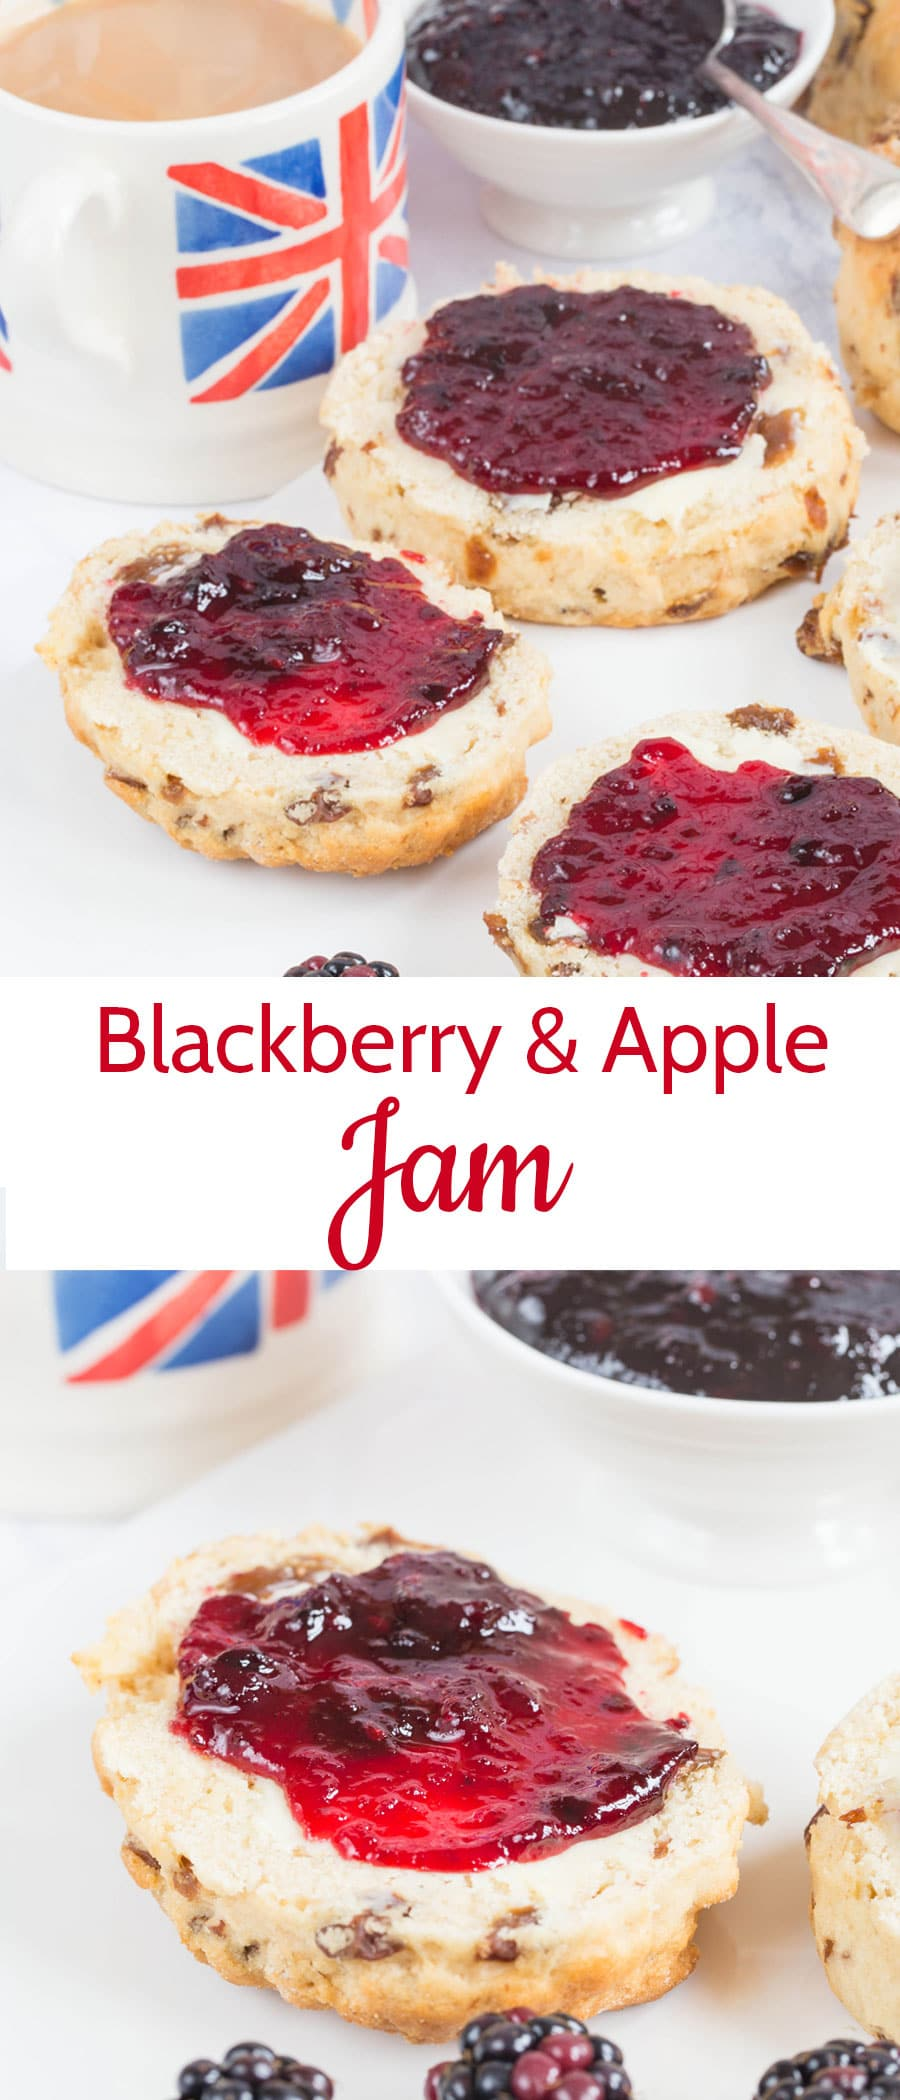 This easy small batch blackberry and apple jam is quick to make and produces delicious results. It couldn't be more British!